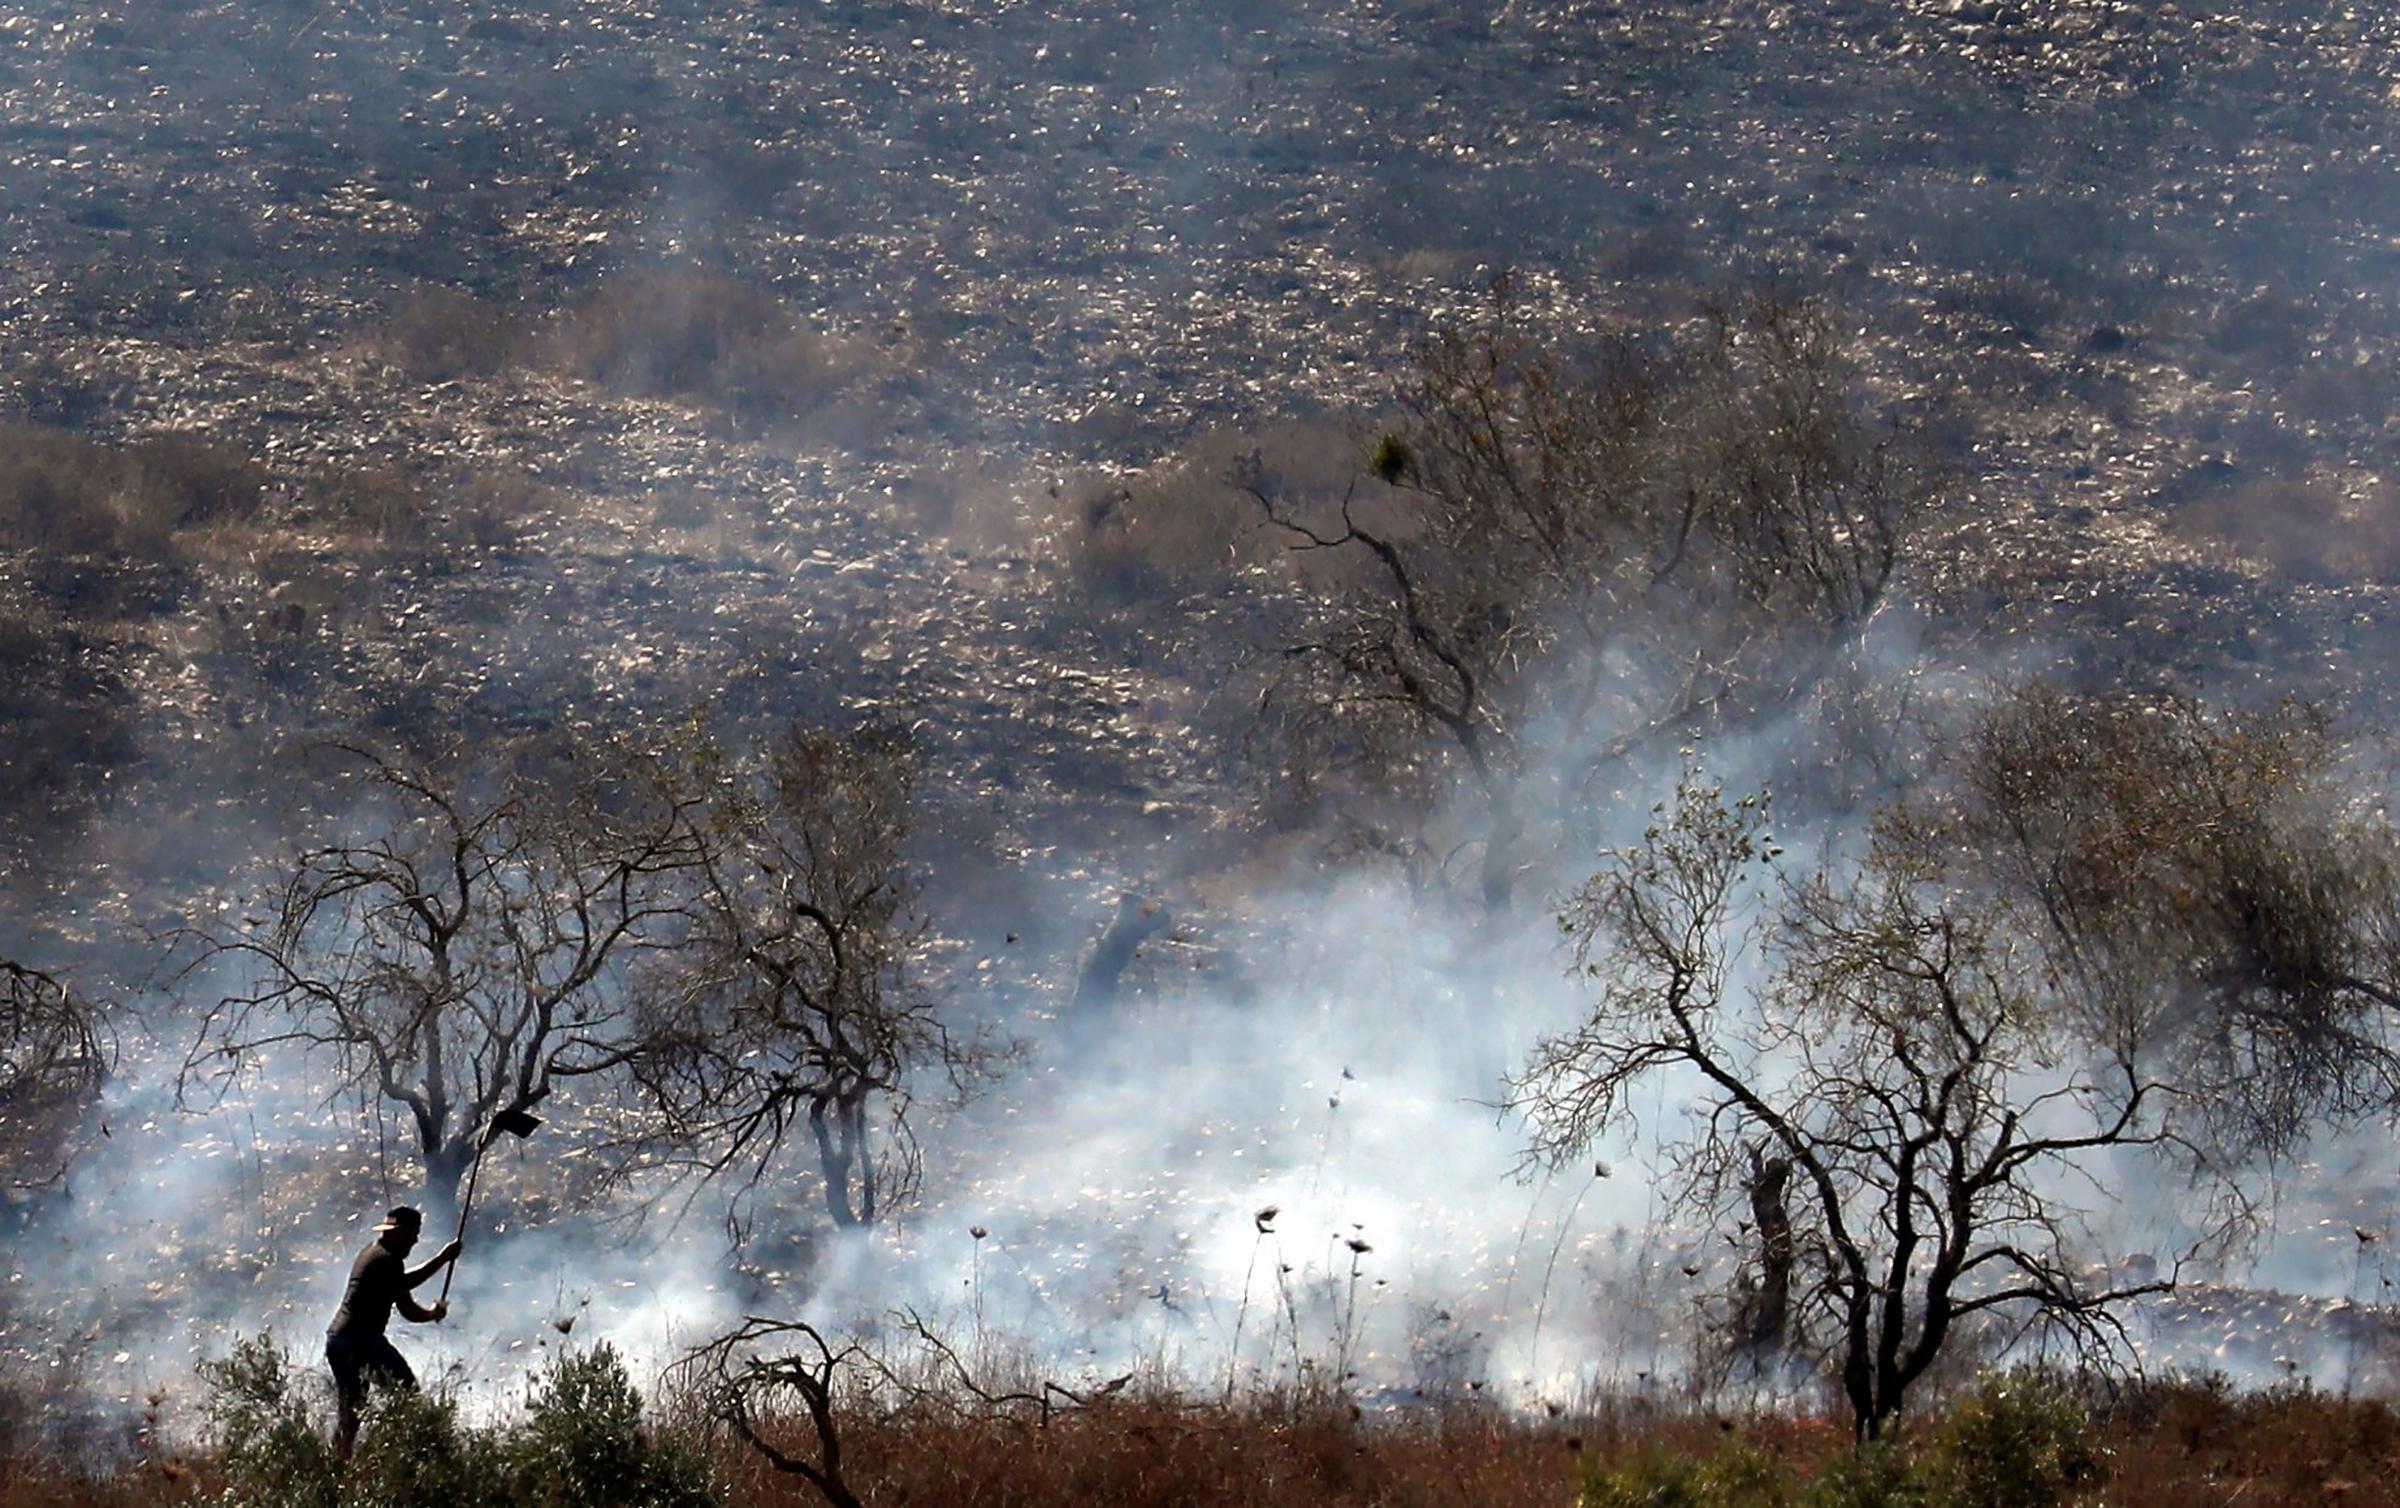 A Palestinian tries to extinguish a fire in an olive grove near the Palestinian village of Burin in the northern West Bank by the Israeli settlement of Yitzhar, on Oct. 16, 2019.